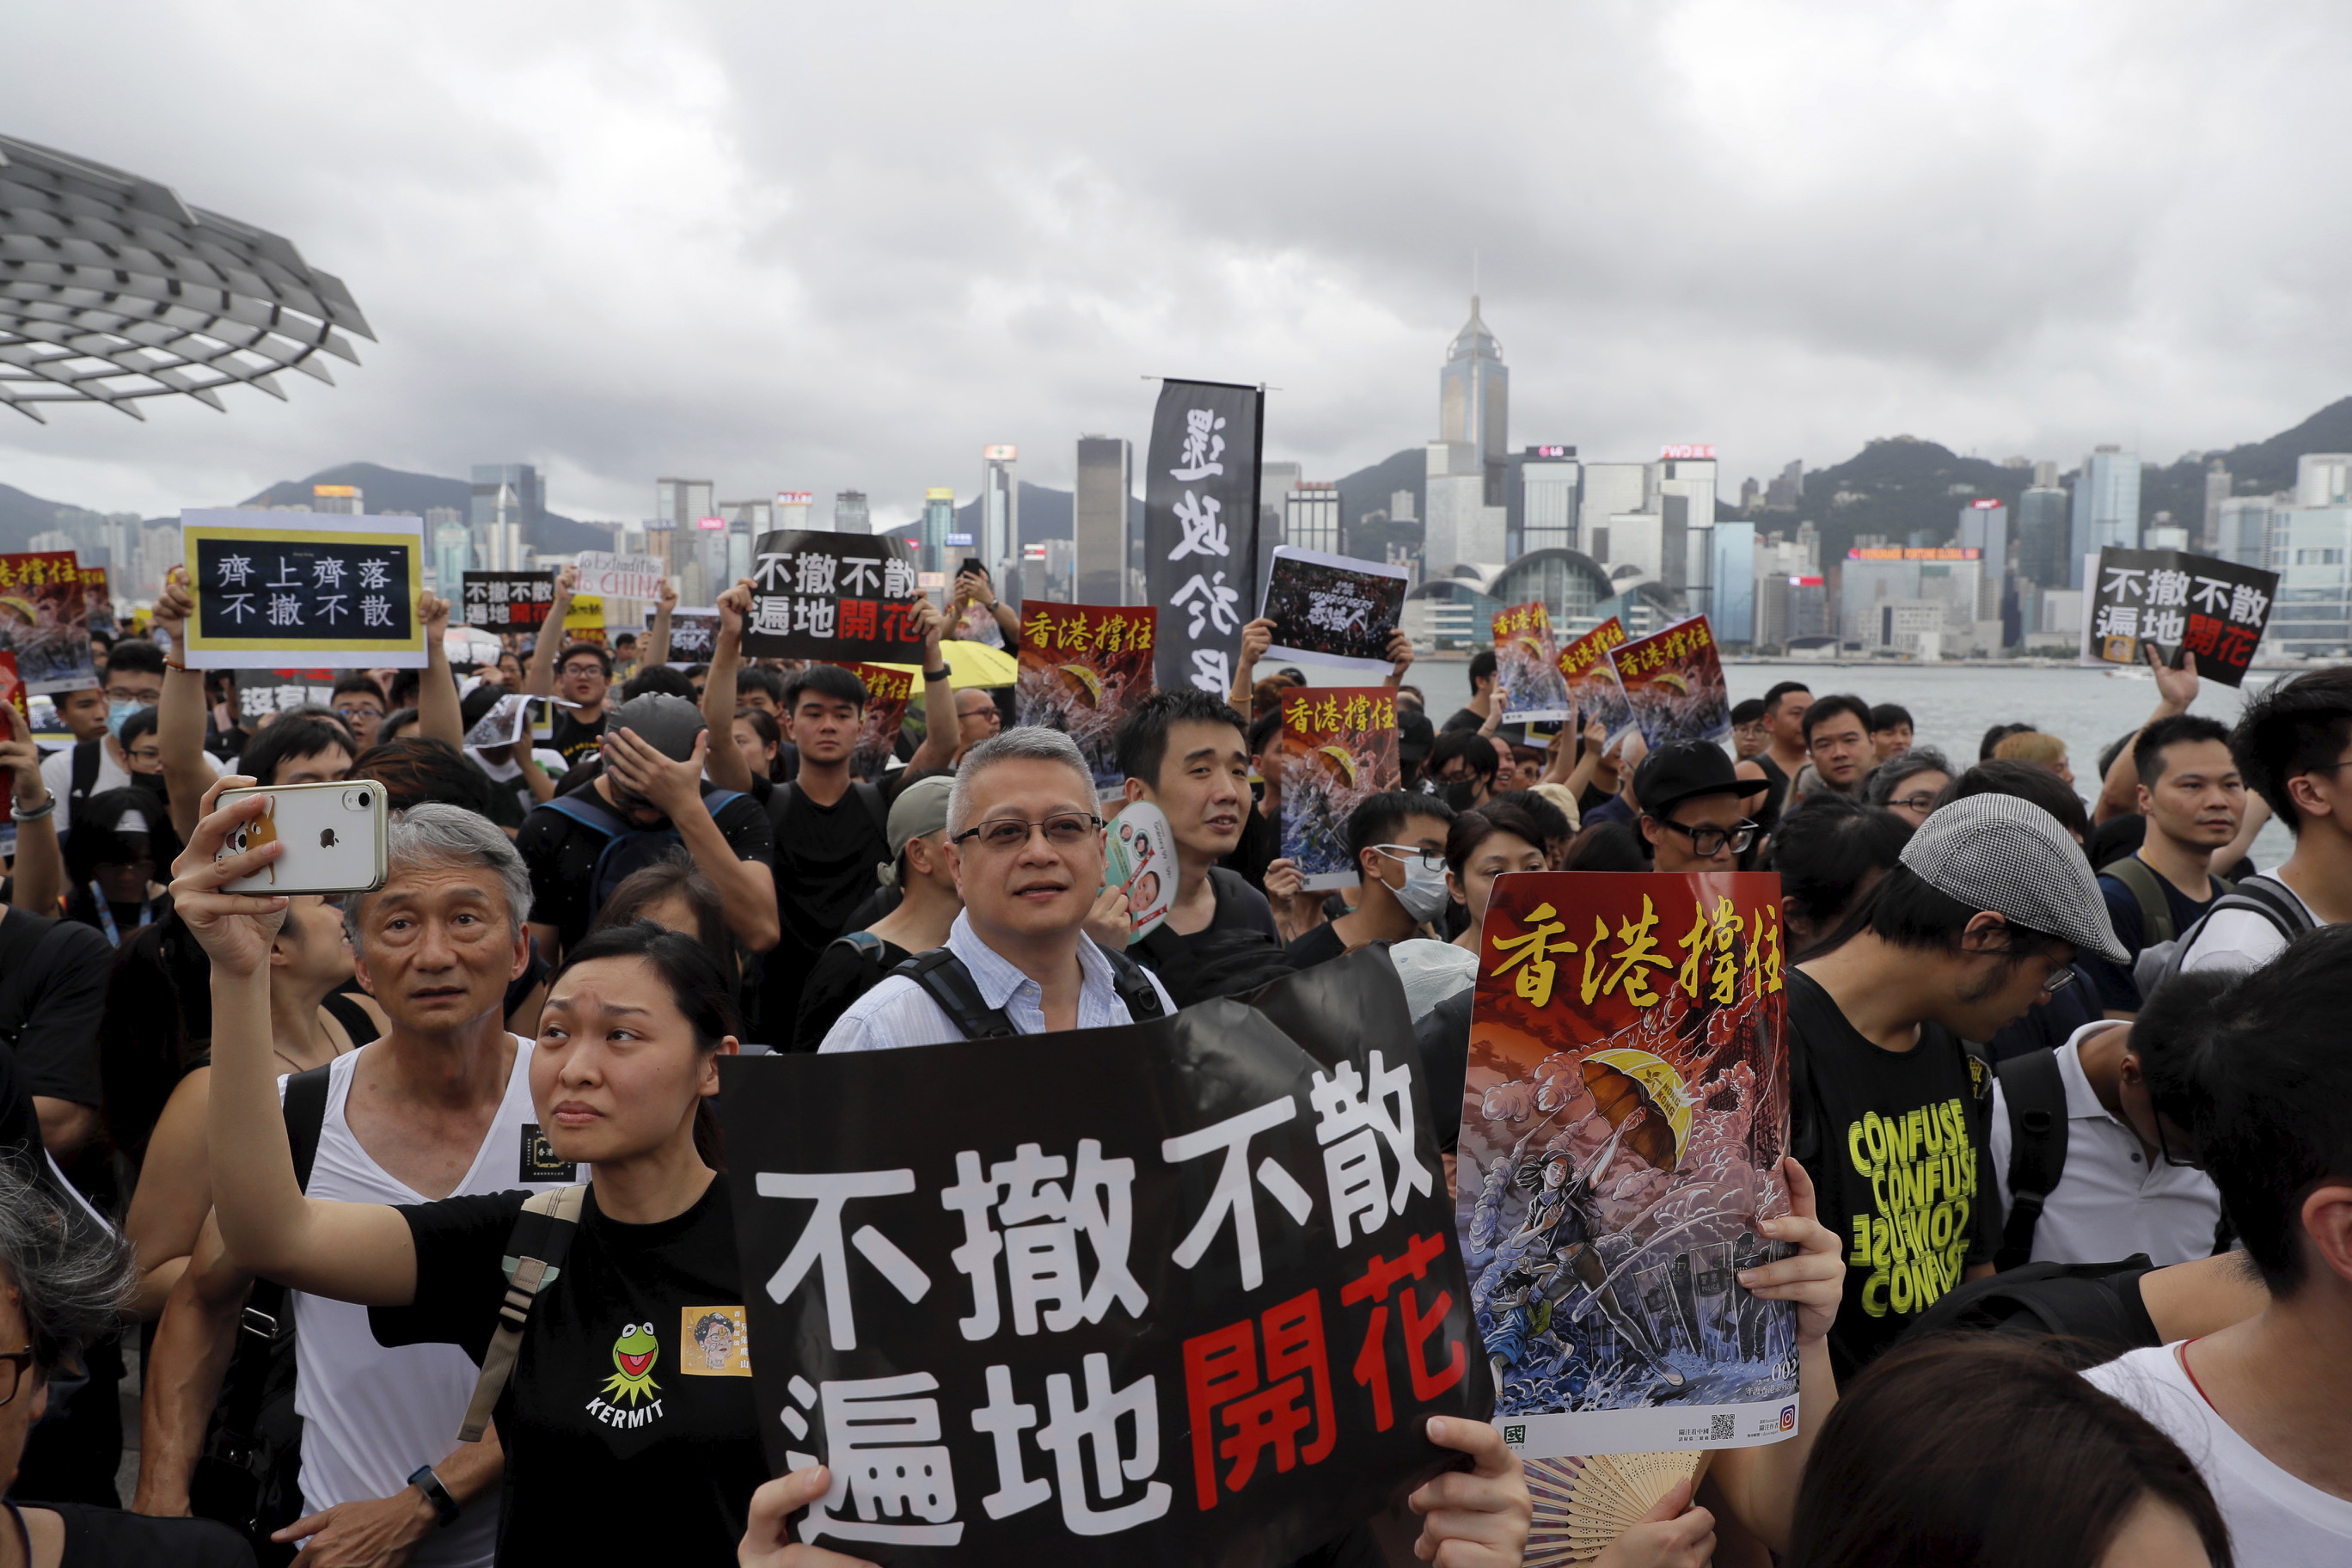 Tens of thousands in Hong Kong take message to mainlanders